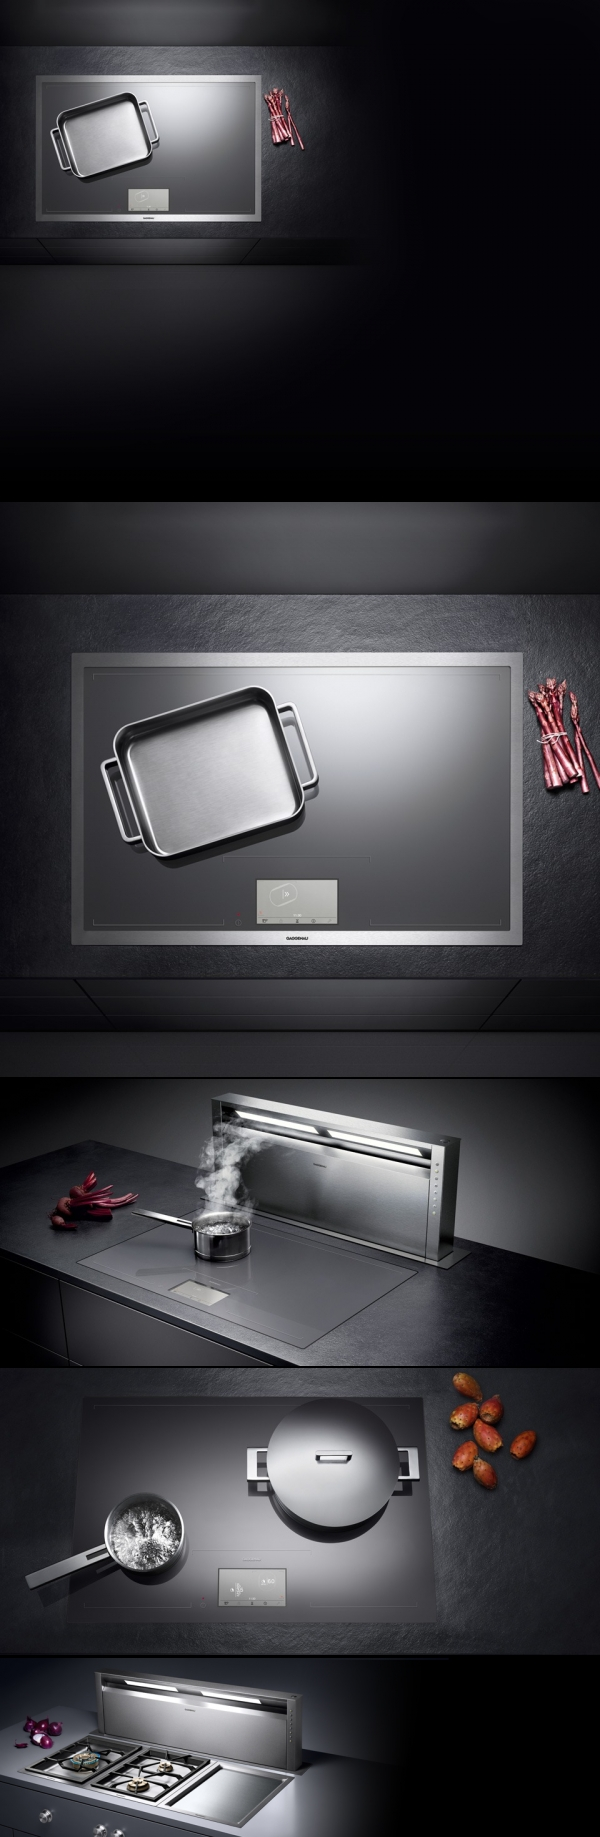 induction cook technology with design by gaggenau germany technology pinterest. Black Bedroom Furniture Sets. Home Design Ideas